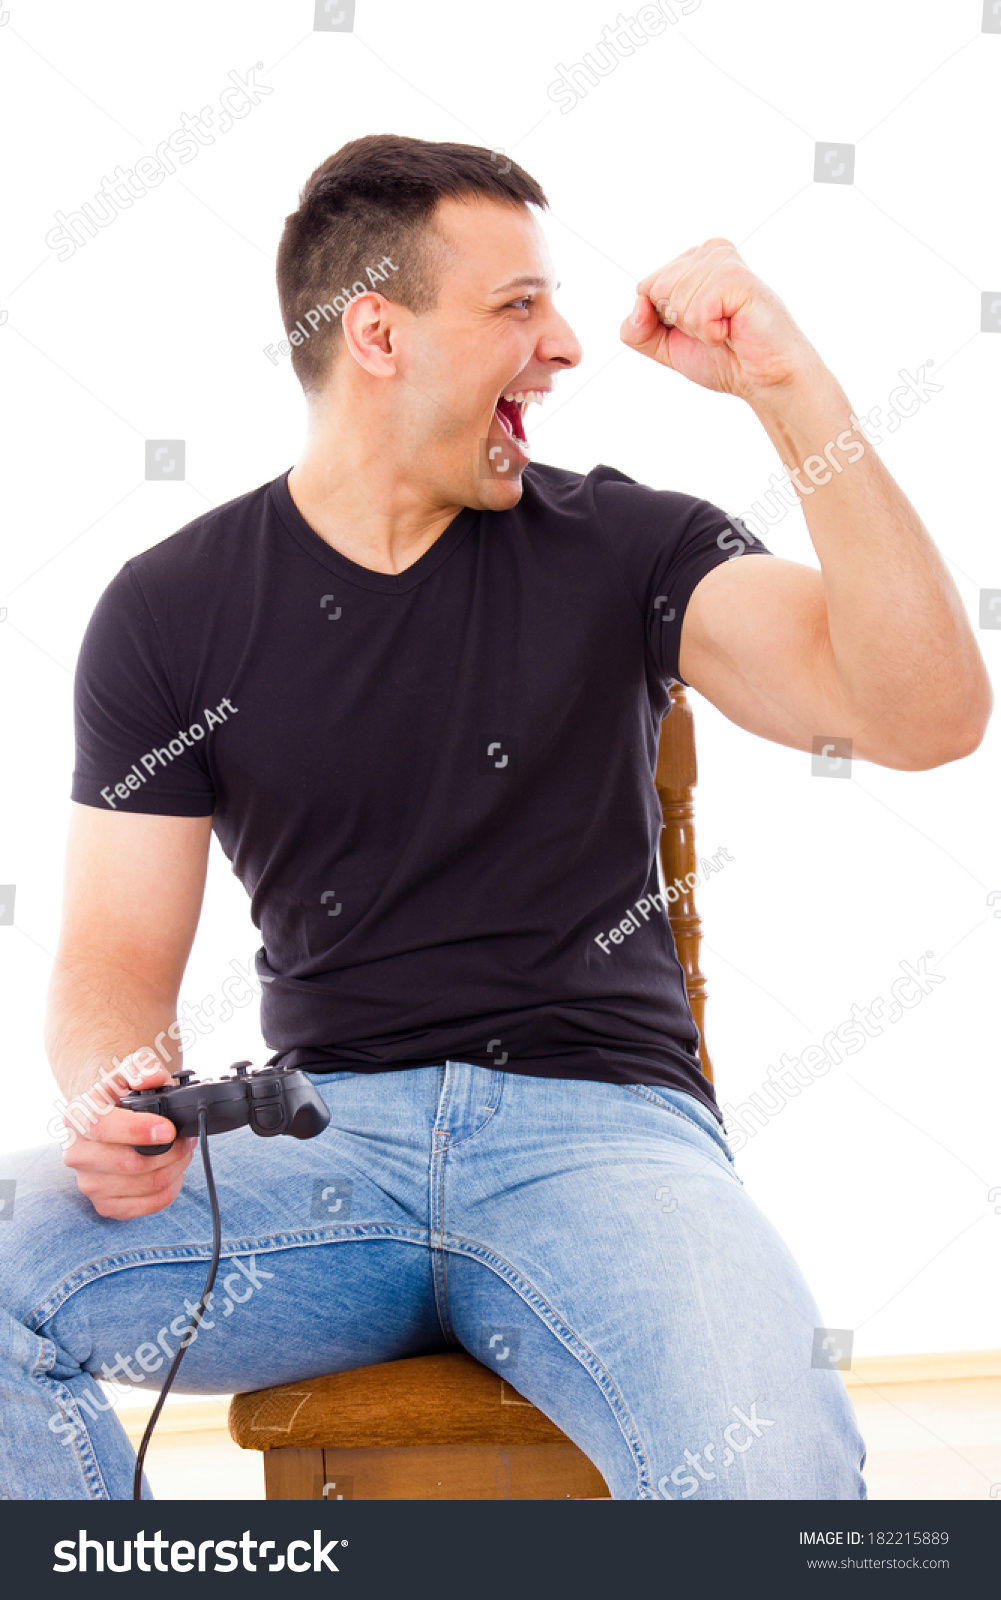 Sexy Man Jeans Winning Video Game Stock Photo 182215889 - Shutterstock